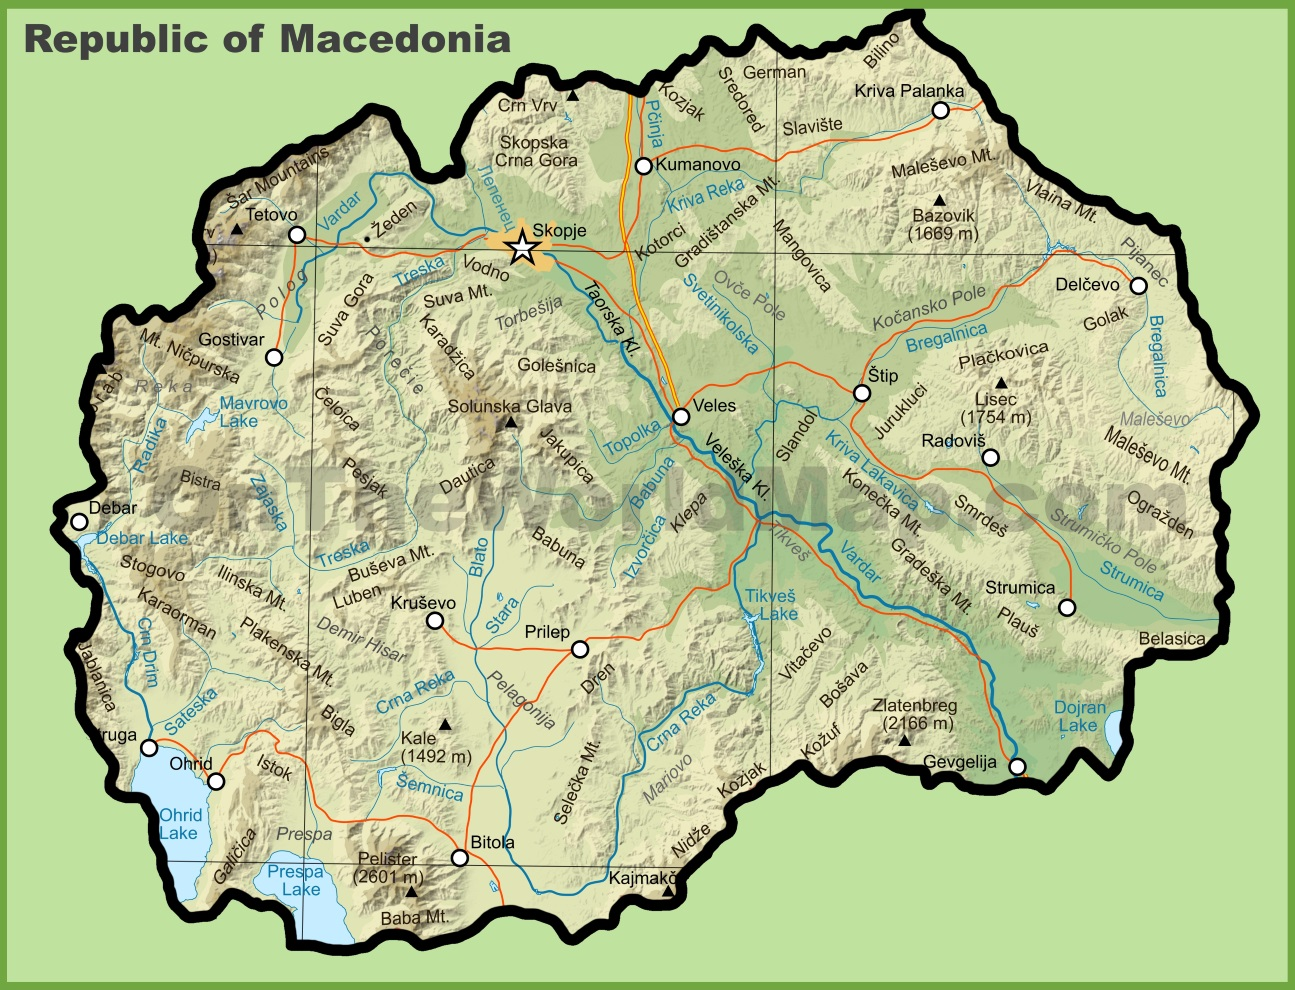 Macedonia physical map on italy map, spain map, czech republic map, roman empire map, austria map, bosnia and herzegovina map, iceland map, asia minor map, russia map, peloponnesus map, scotland map, greece map, netherlands map, marshall islands map, gaul map, europe map, belgium map, germany map, persia map, caspian sea map, france map, balkan peninsula map, portugal map, greek islands map, cyprus map, sweden map, switzerland map, turkey map, norway map, united kingdom map, ireland map, kuwait map, poland map, sicily map, denmark map, malta map,